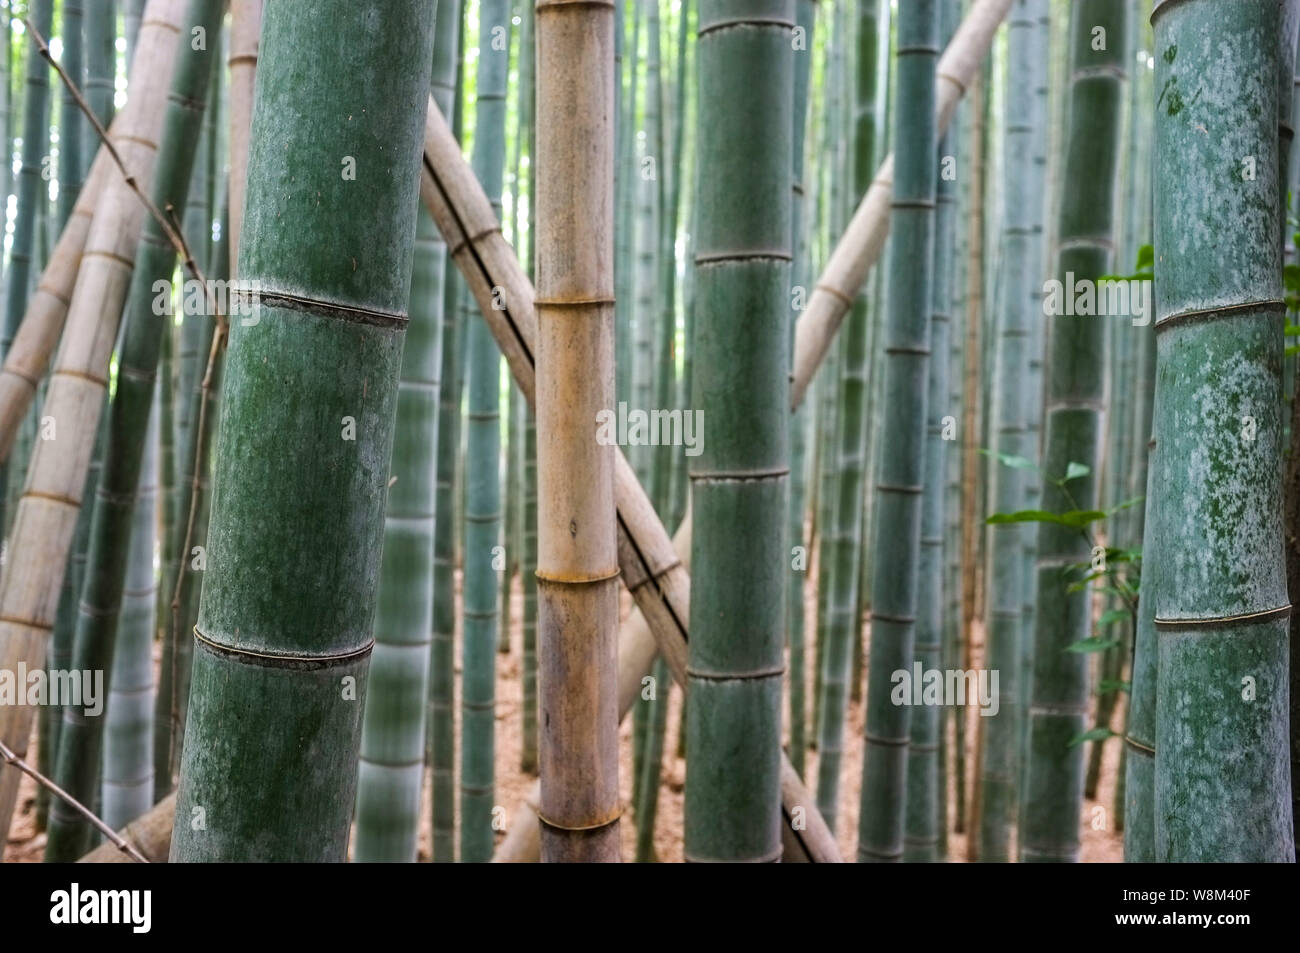 Arashiyama Bamboo Grove also known as the Sagano Bamboo Forest, located in western Kyoto, Japan. Stock Photo